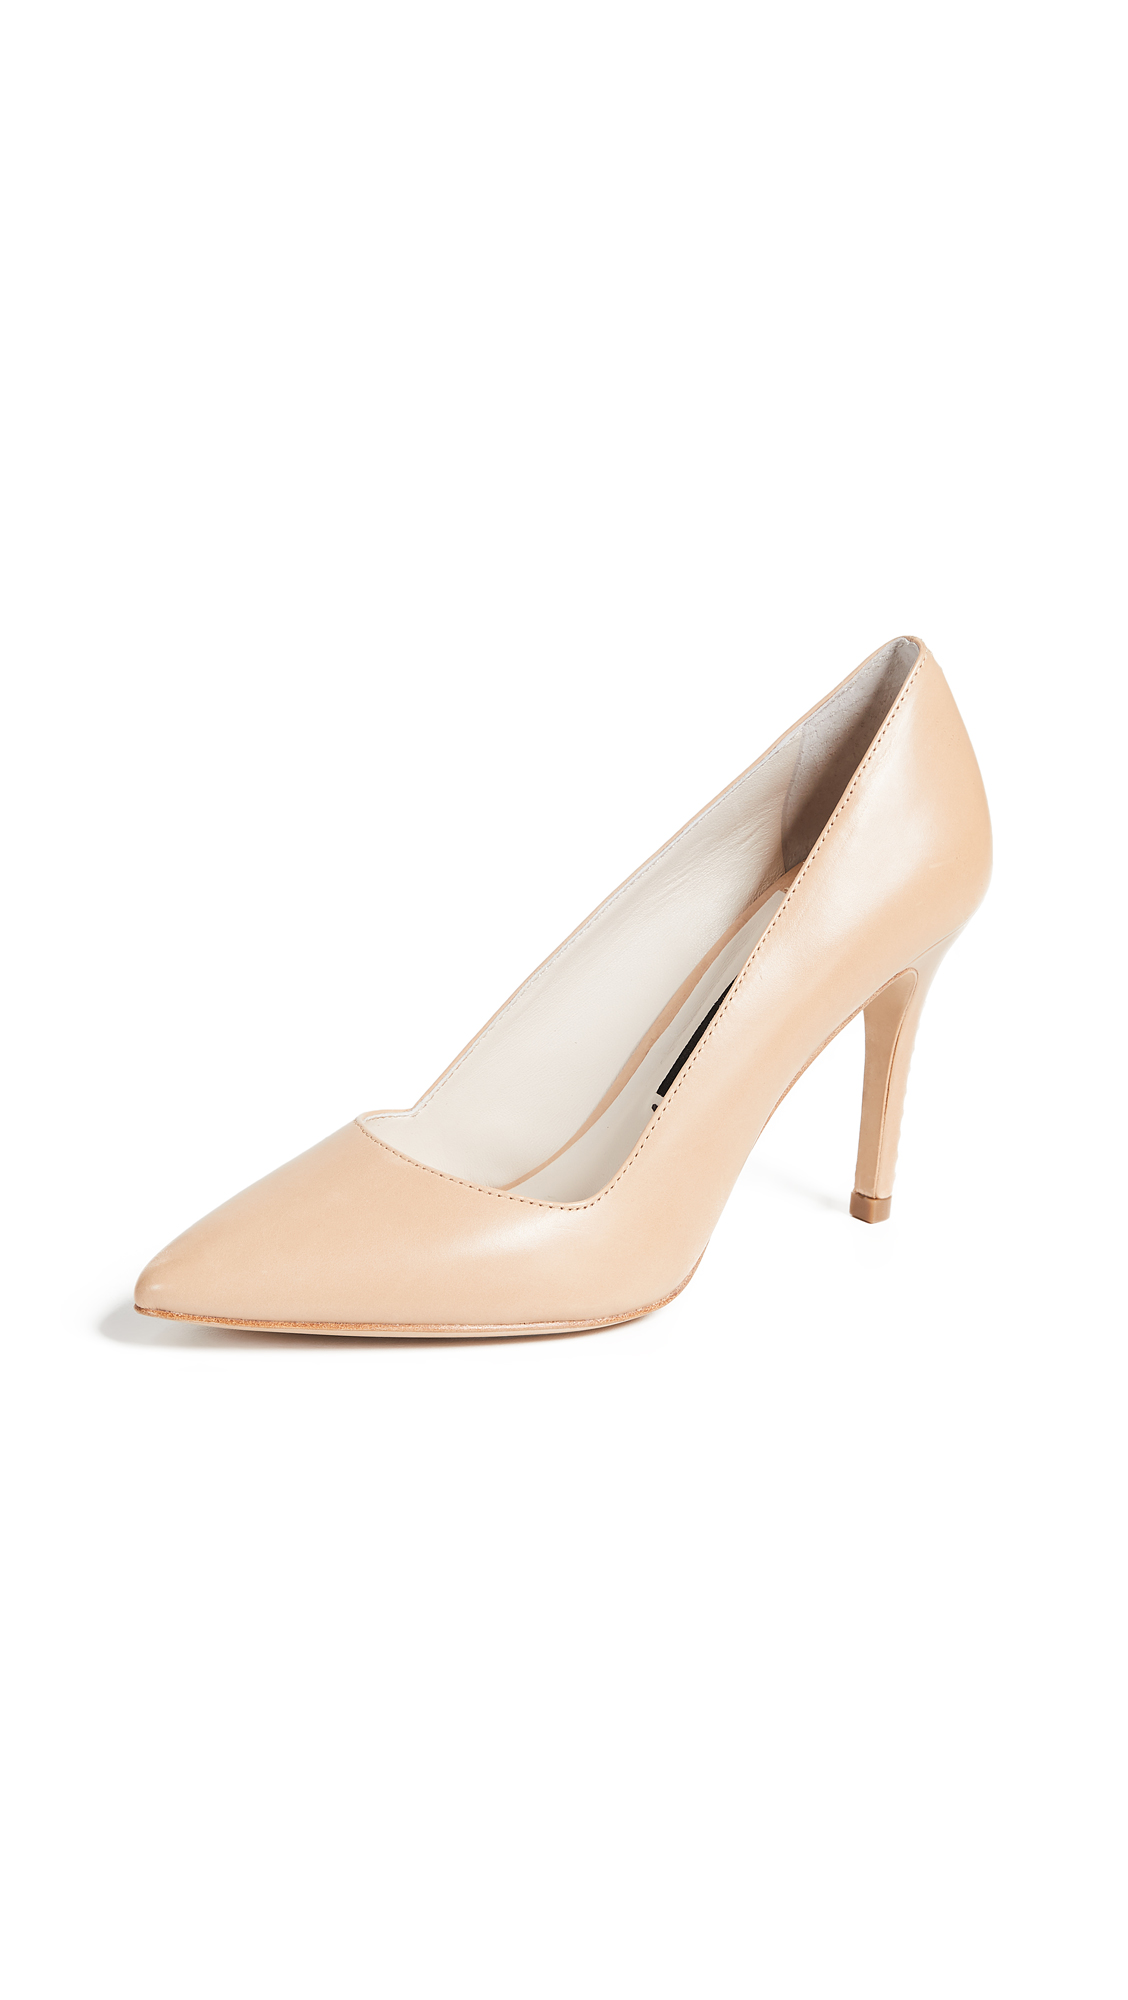 alice + olivia Dina Point Toe Pumps - Natural